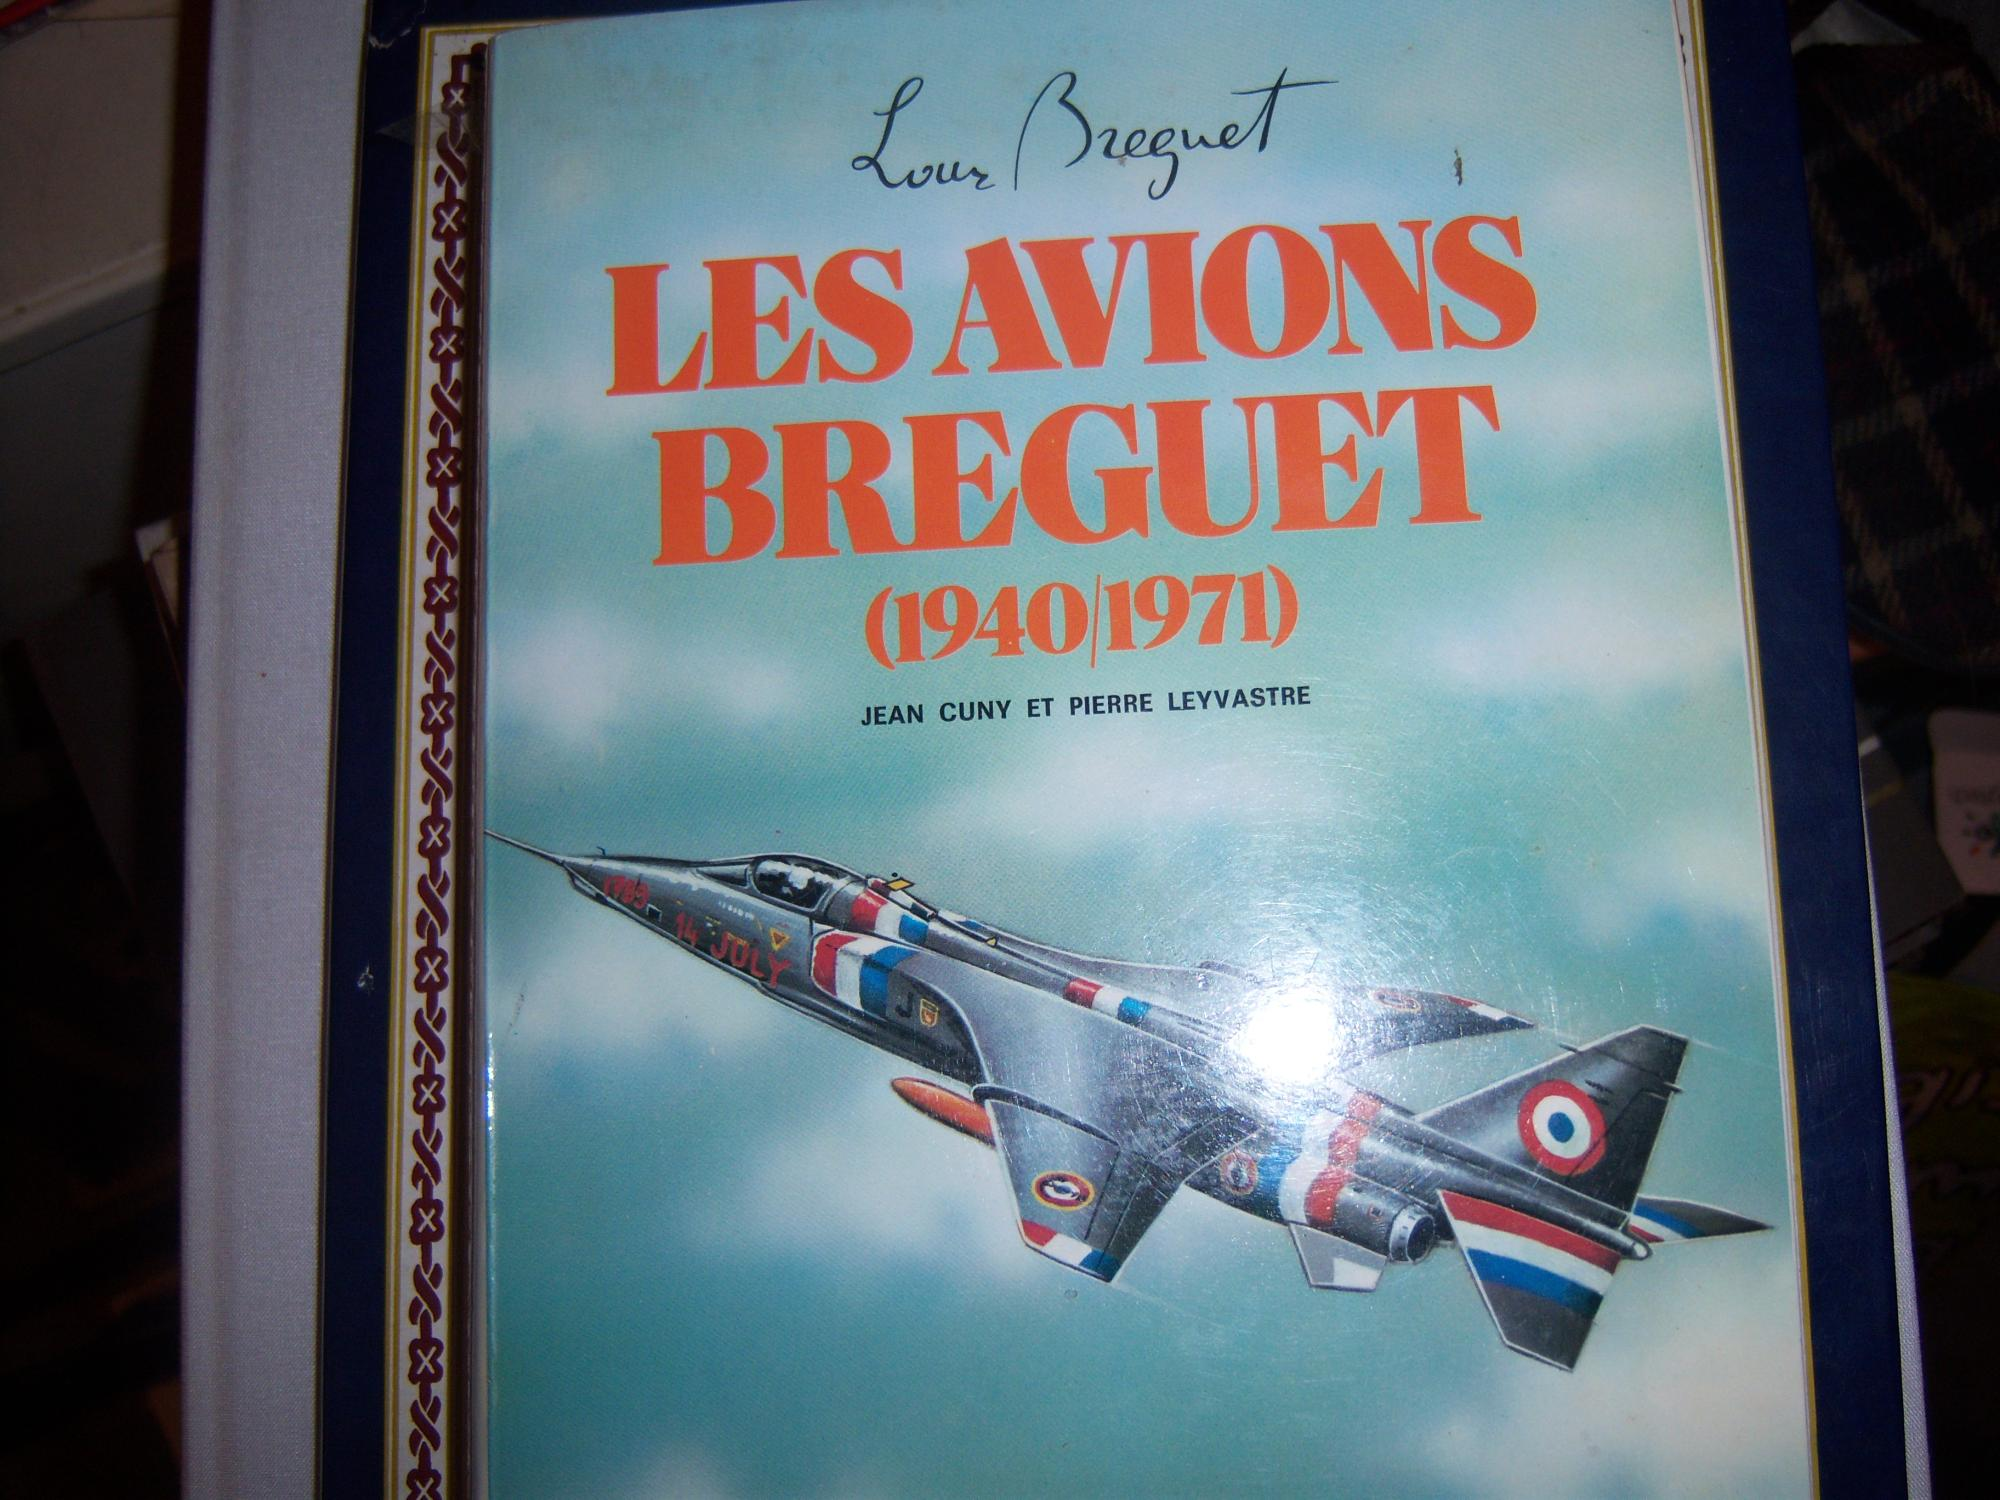 Les avions Breguet (1940/1971) Cuny, Jean & Leyvastre, Pierre 360pp including hundreds of b/w photographic illustrations and drawings. Mylar cover to dust jacket has a couple of small tears. Signed by author (J C